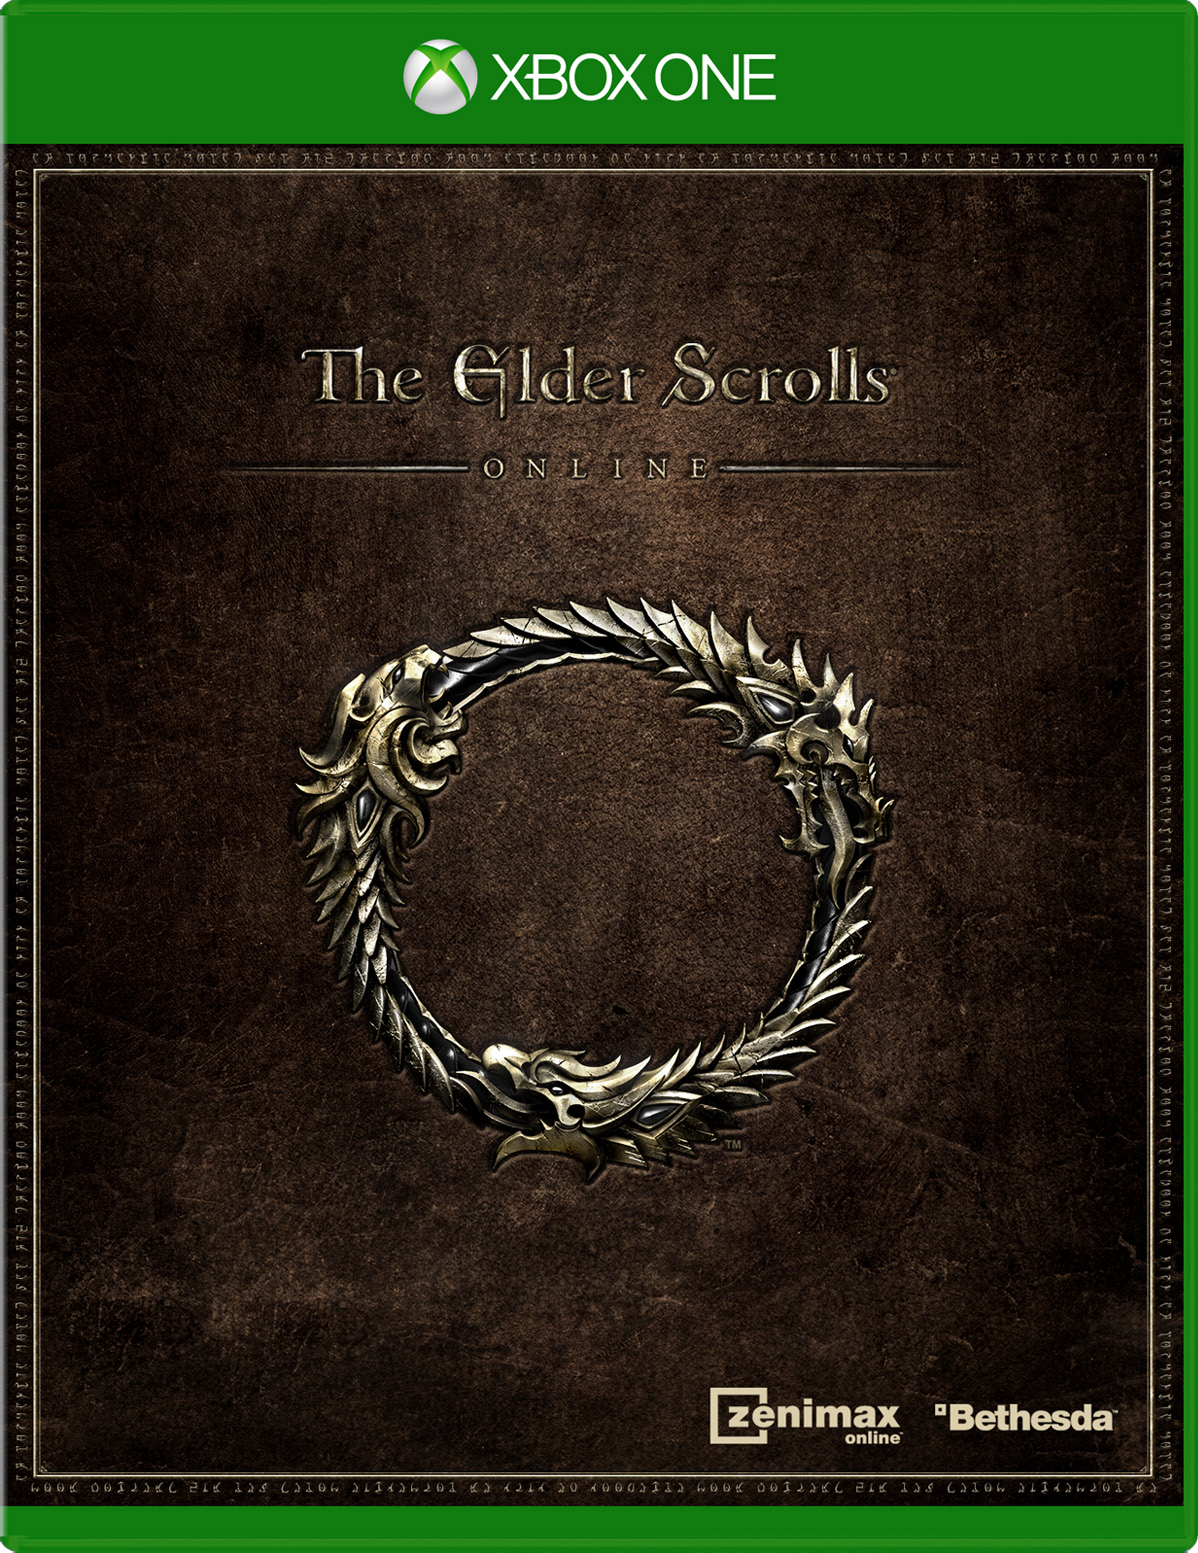 The Elder Scrolls Online for Xbox One Deal